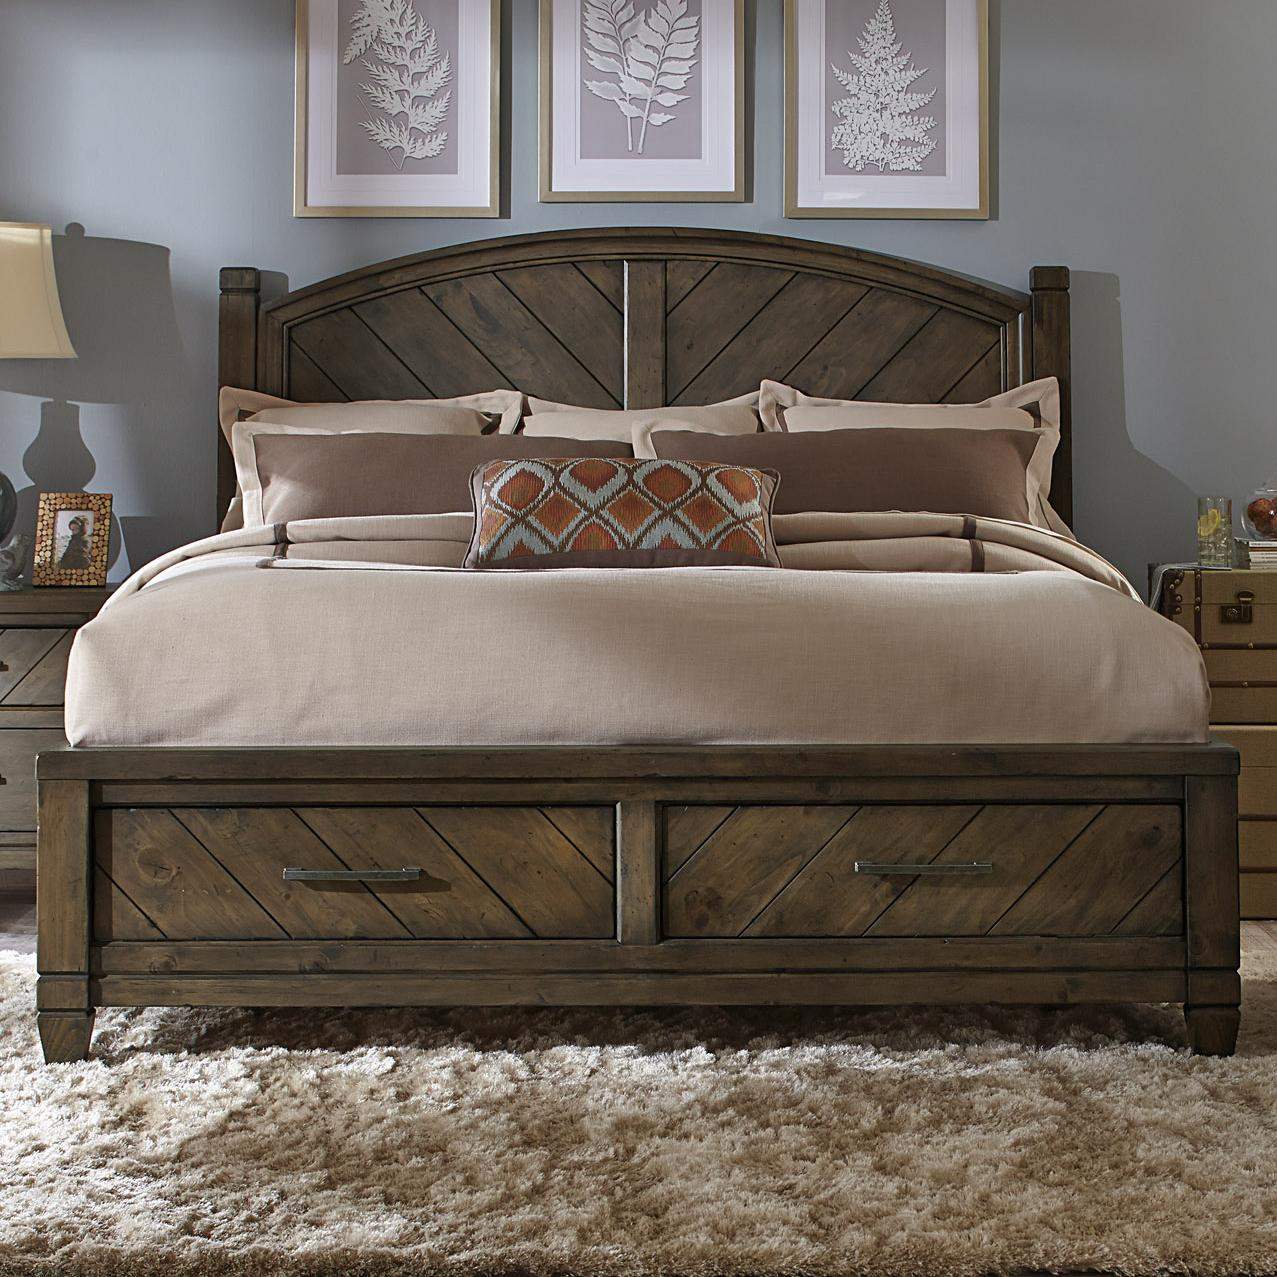 Liberty Furniture Modern Country King Storage Bed - Item Number: 833-BR-KSB